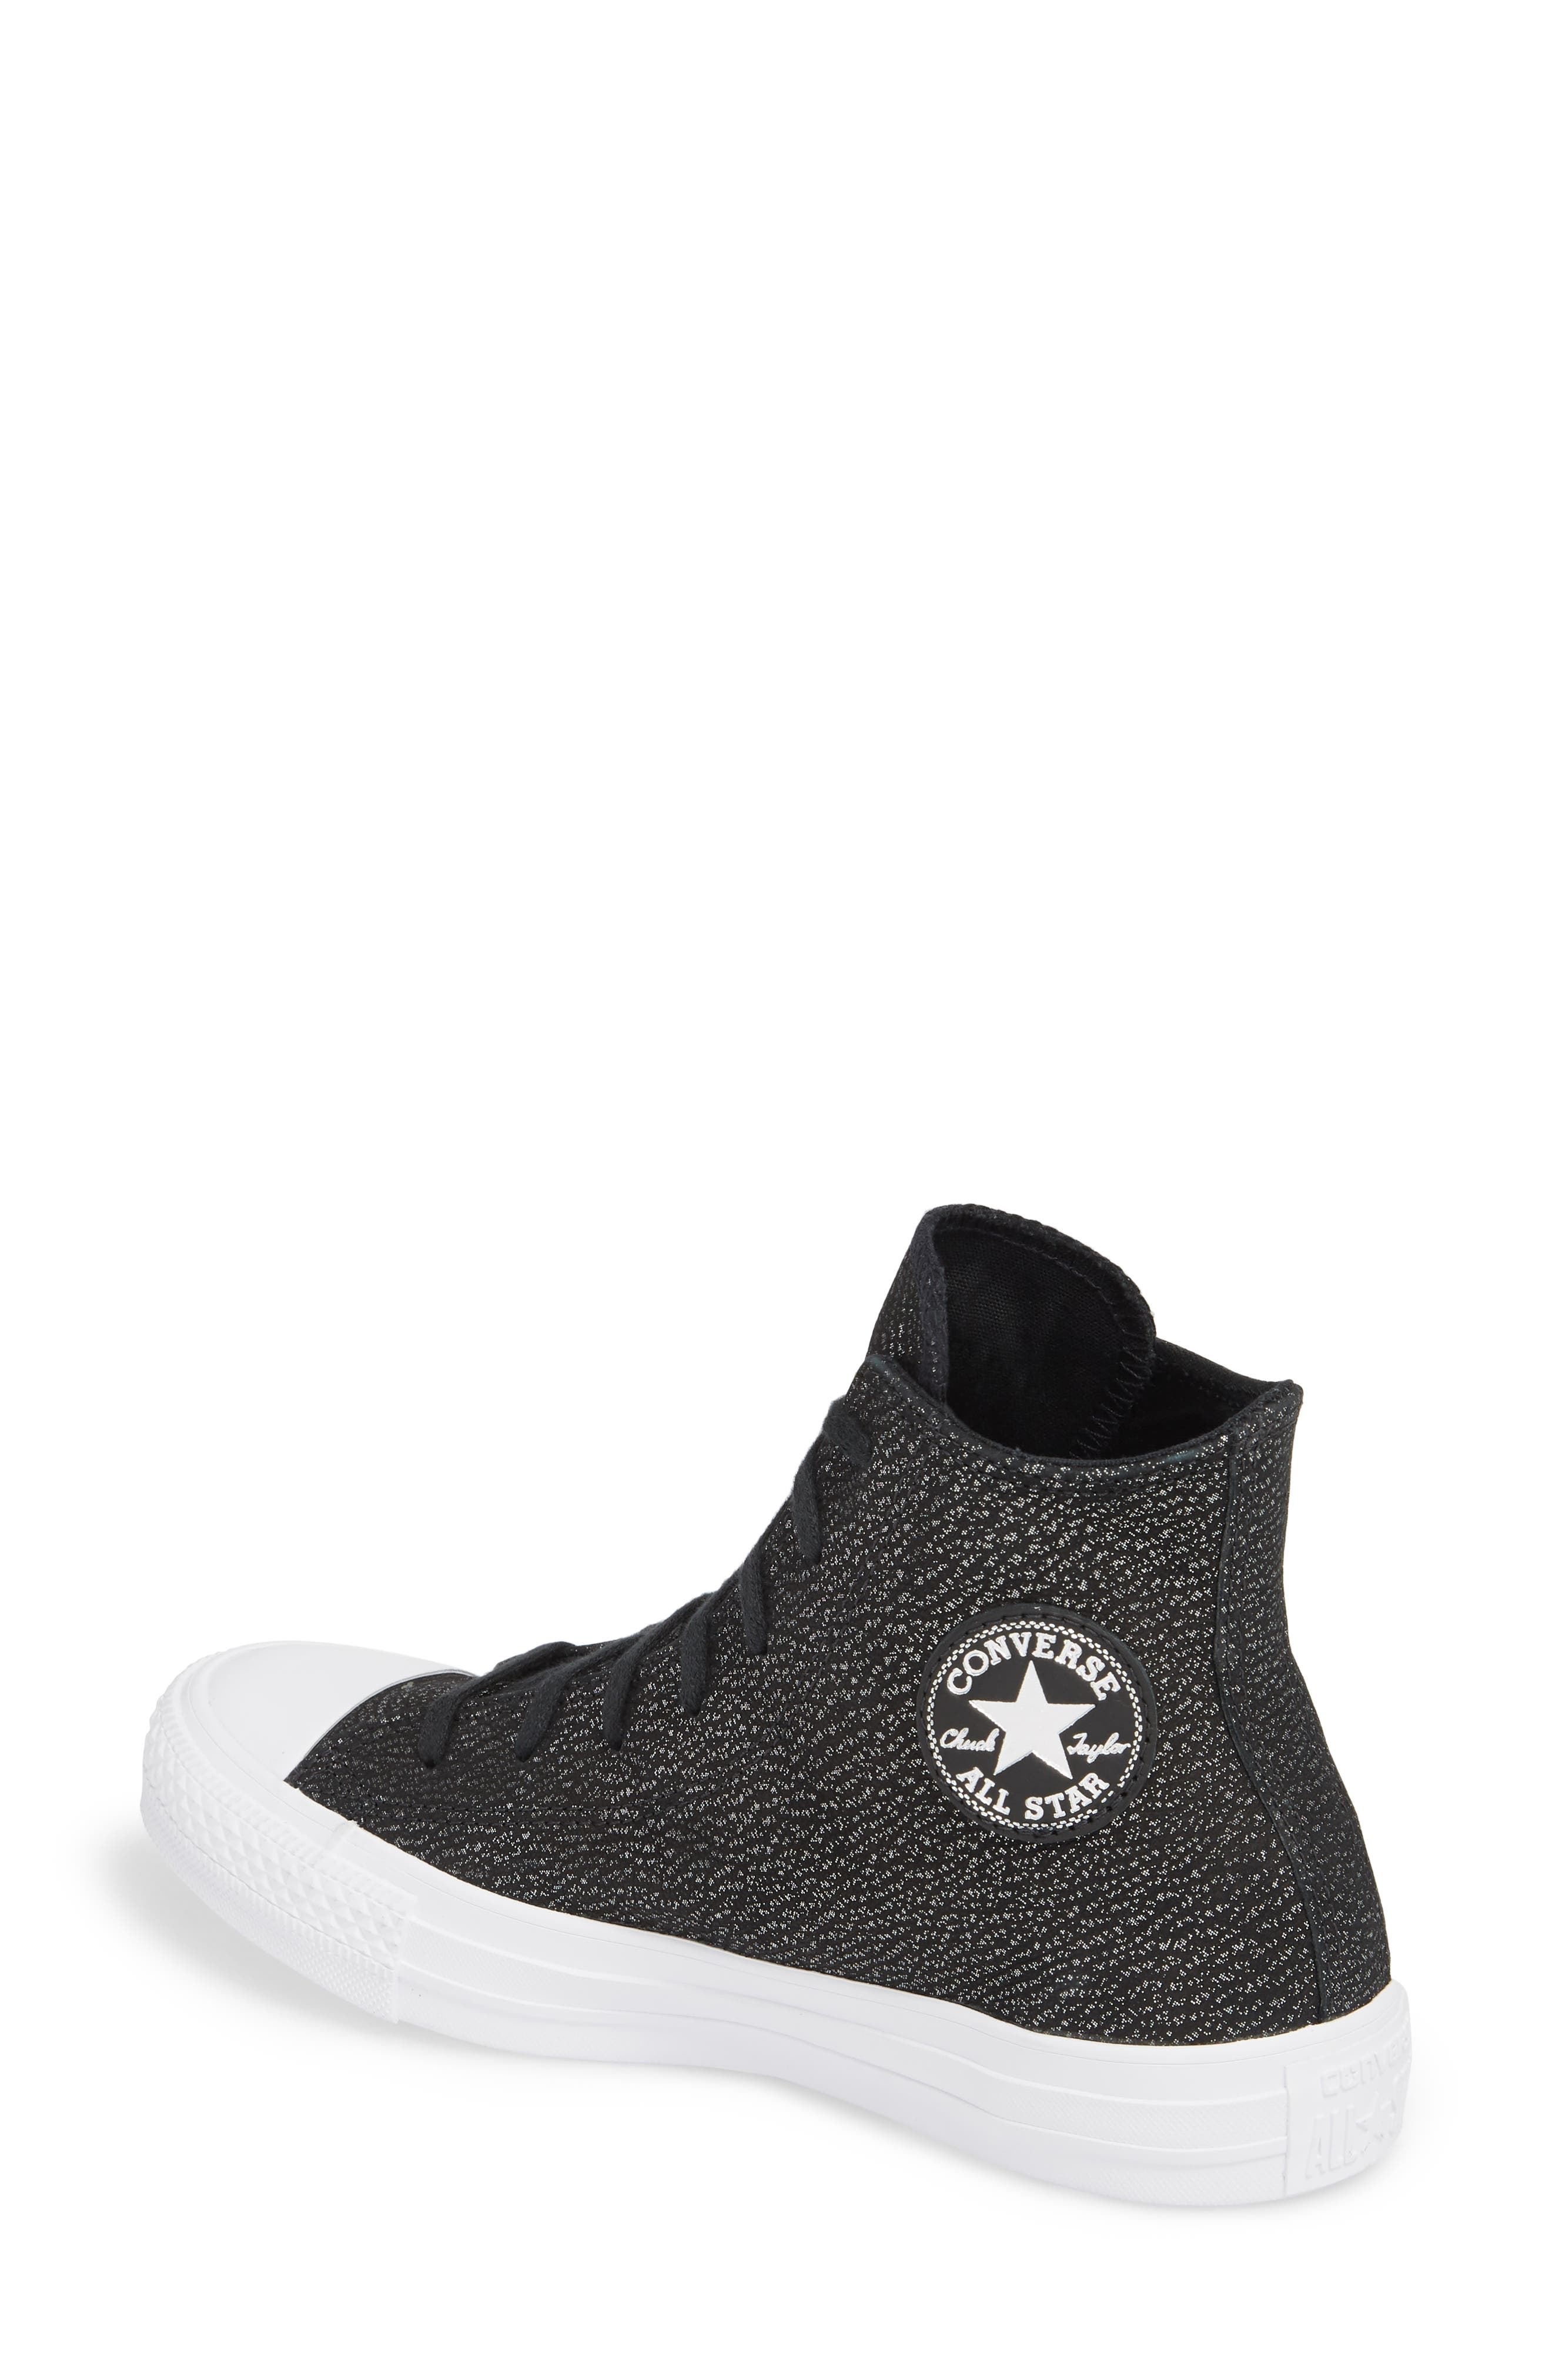 Chuck Taylor<sup>®</sup> All Star<sup>®</sup> Tipped Metallic High Top Sneaker,                             Alternate thumbnail 4, color,